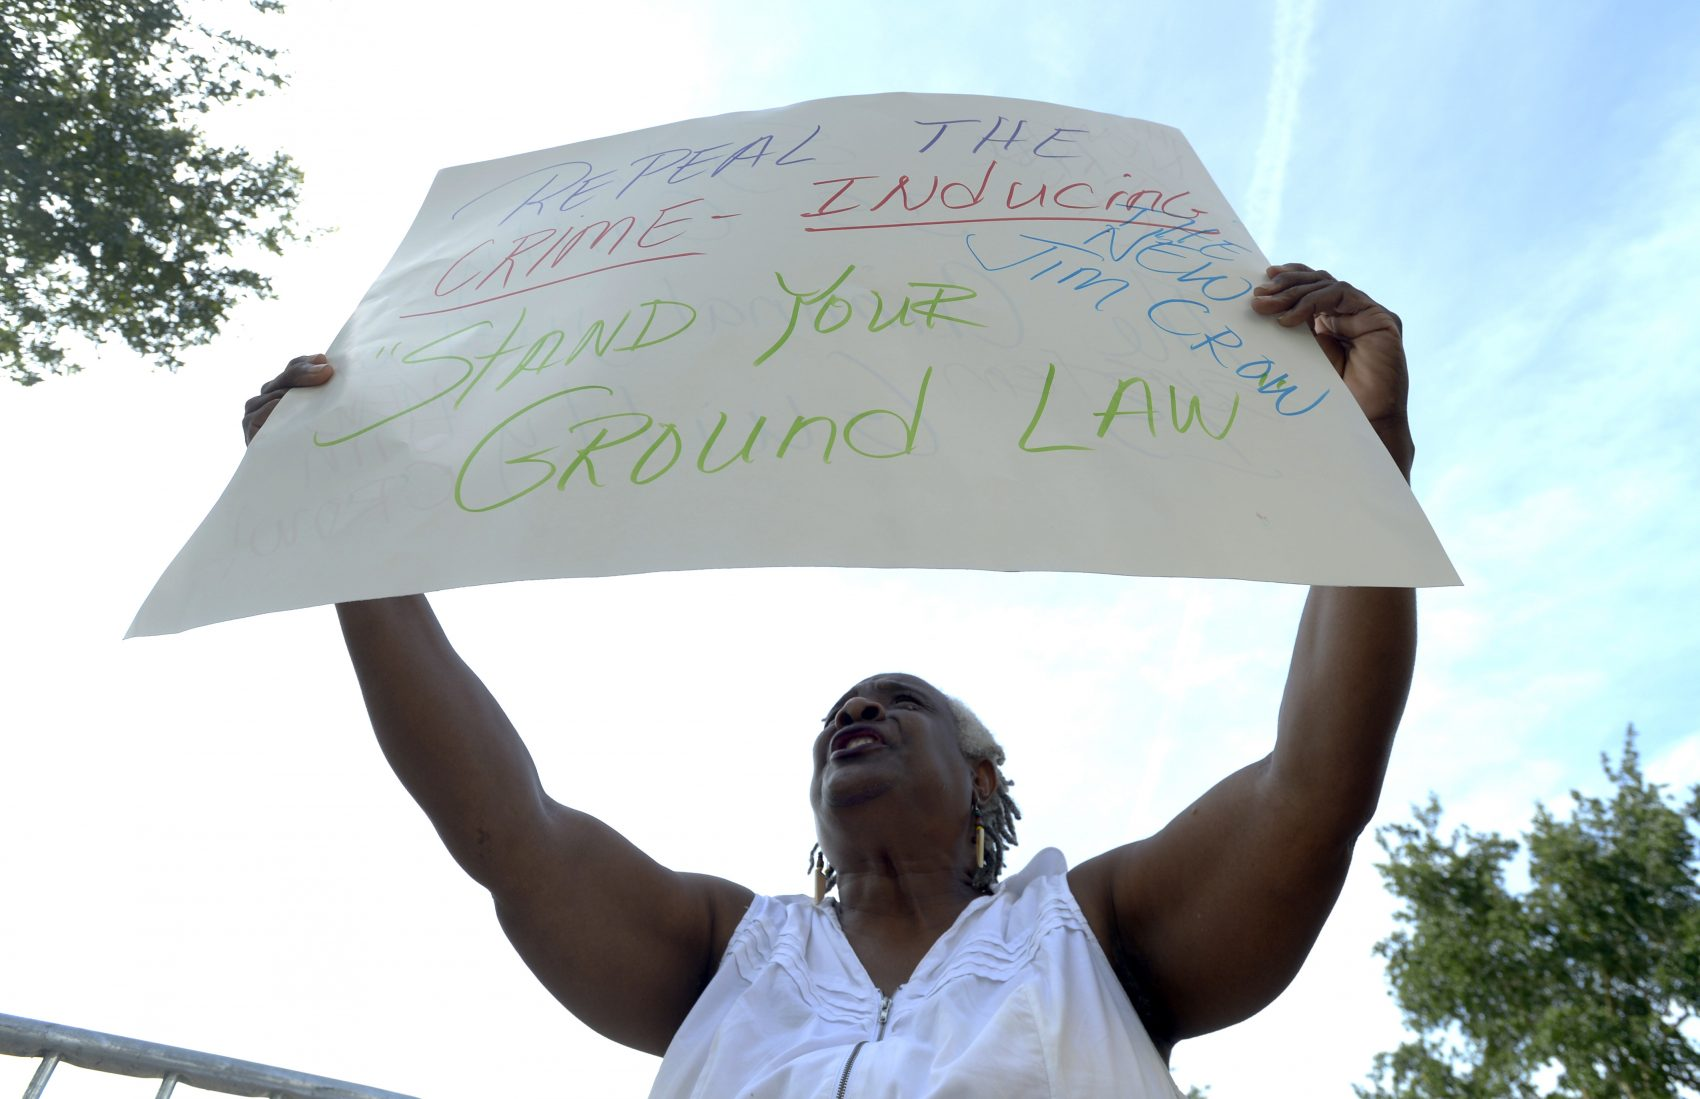 Barbara Jackson, of Sanford, Fla., protests outside the Seminole County Courthouse during the George Zimmerman trial Tuesday, June 11, 2013, in Sanford. (Phelan M. Ebenhack/AP)